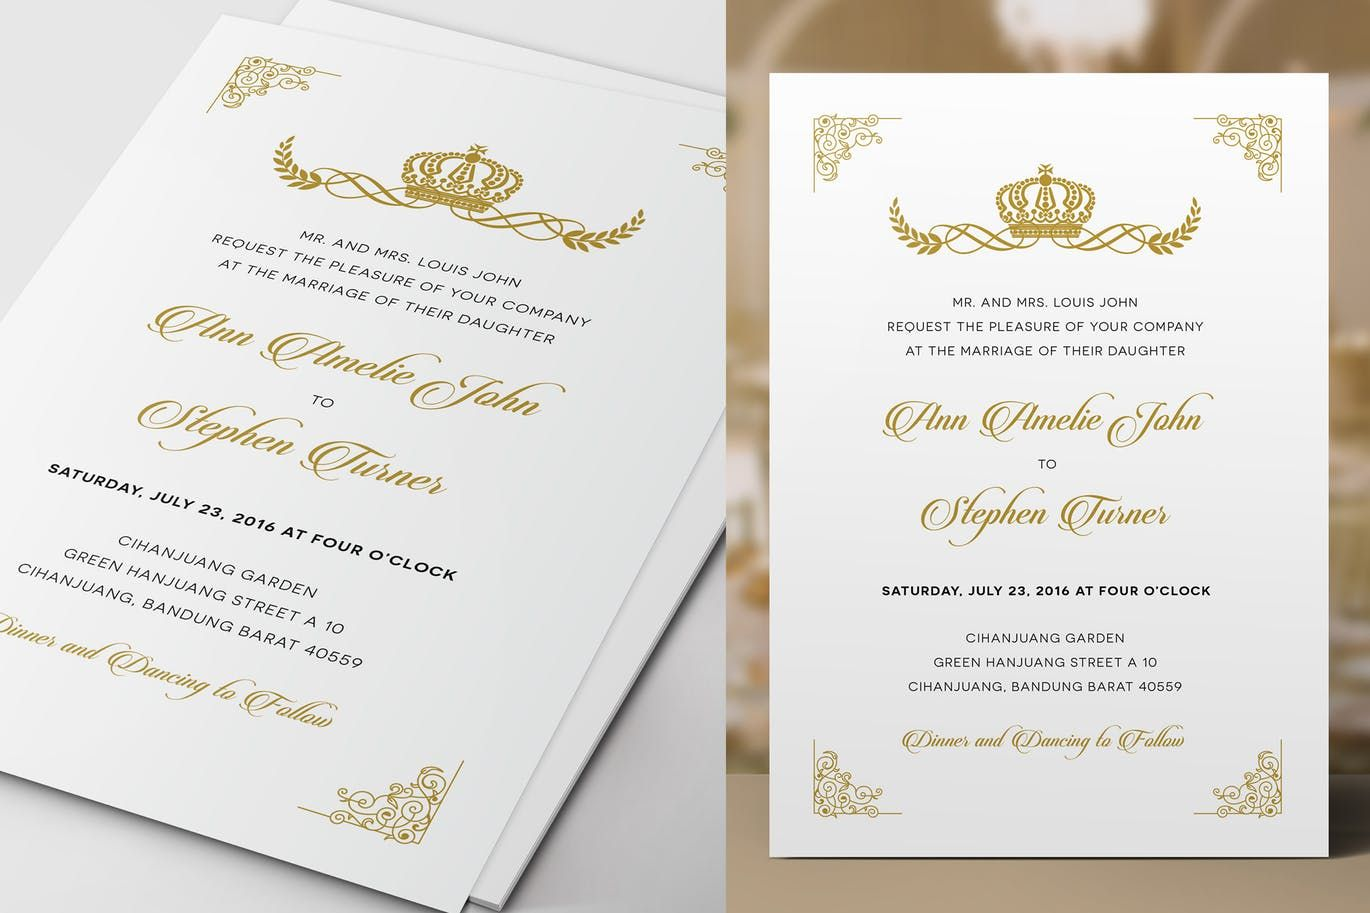 Royal Wedding Invitation By Aarleykaiven On Envato Elements Royal Wedding Invitation Cinderella Wedding Invitations Modern Wedding Invitation Wording